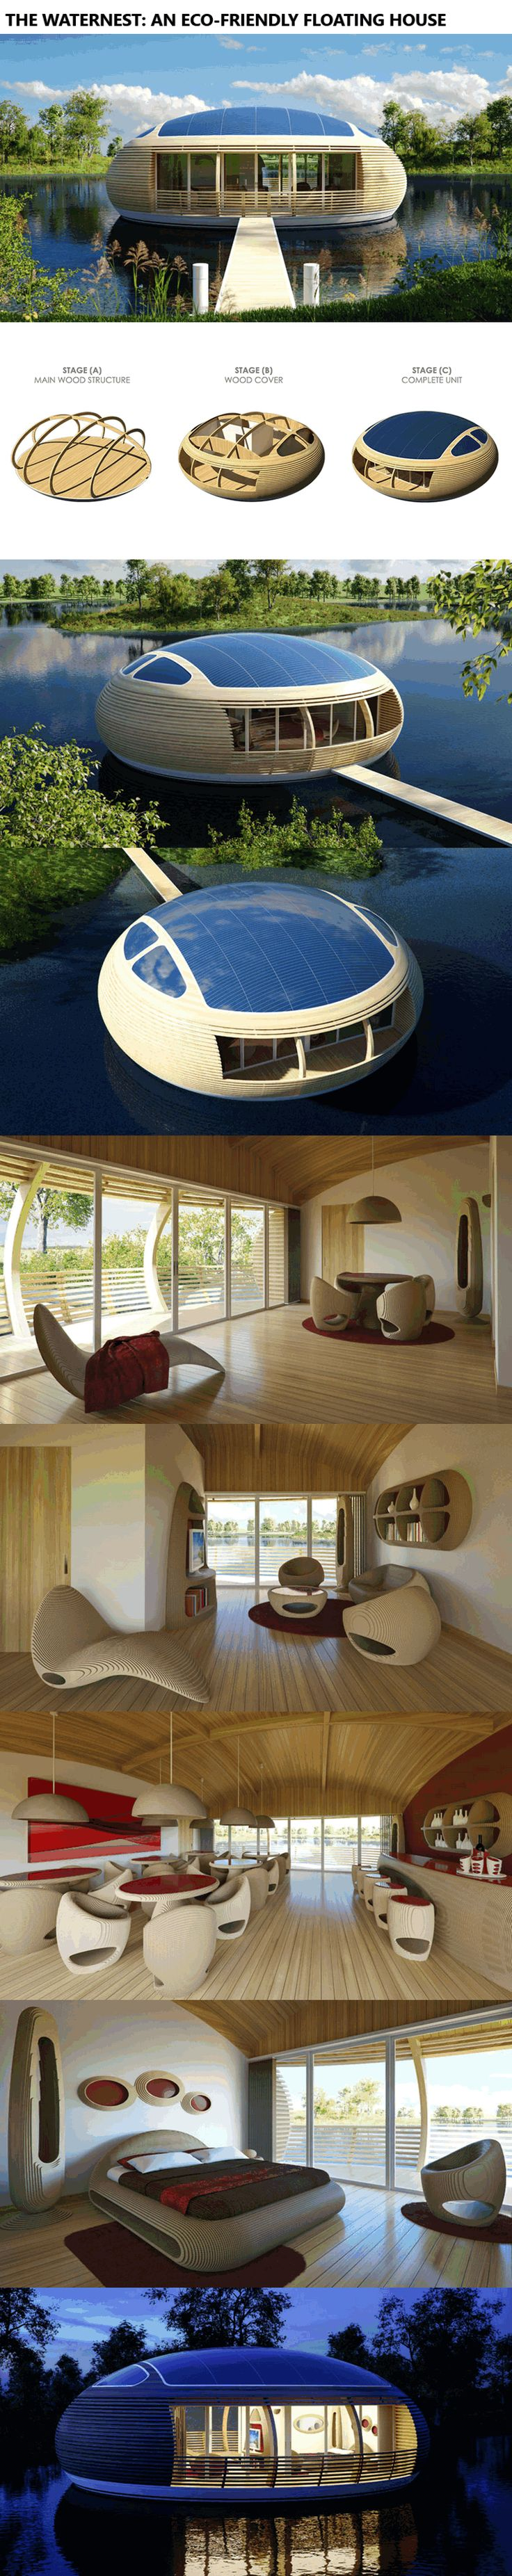 The WaterNest: An Eco-Friendly Floating House http://www.alternative-energy-news.info/waternest-floating-house/